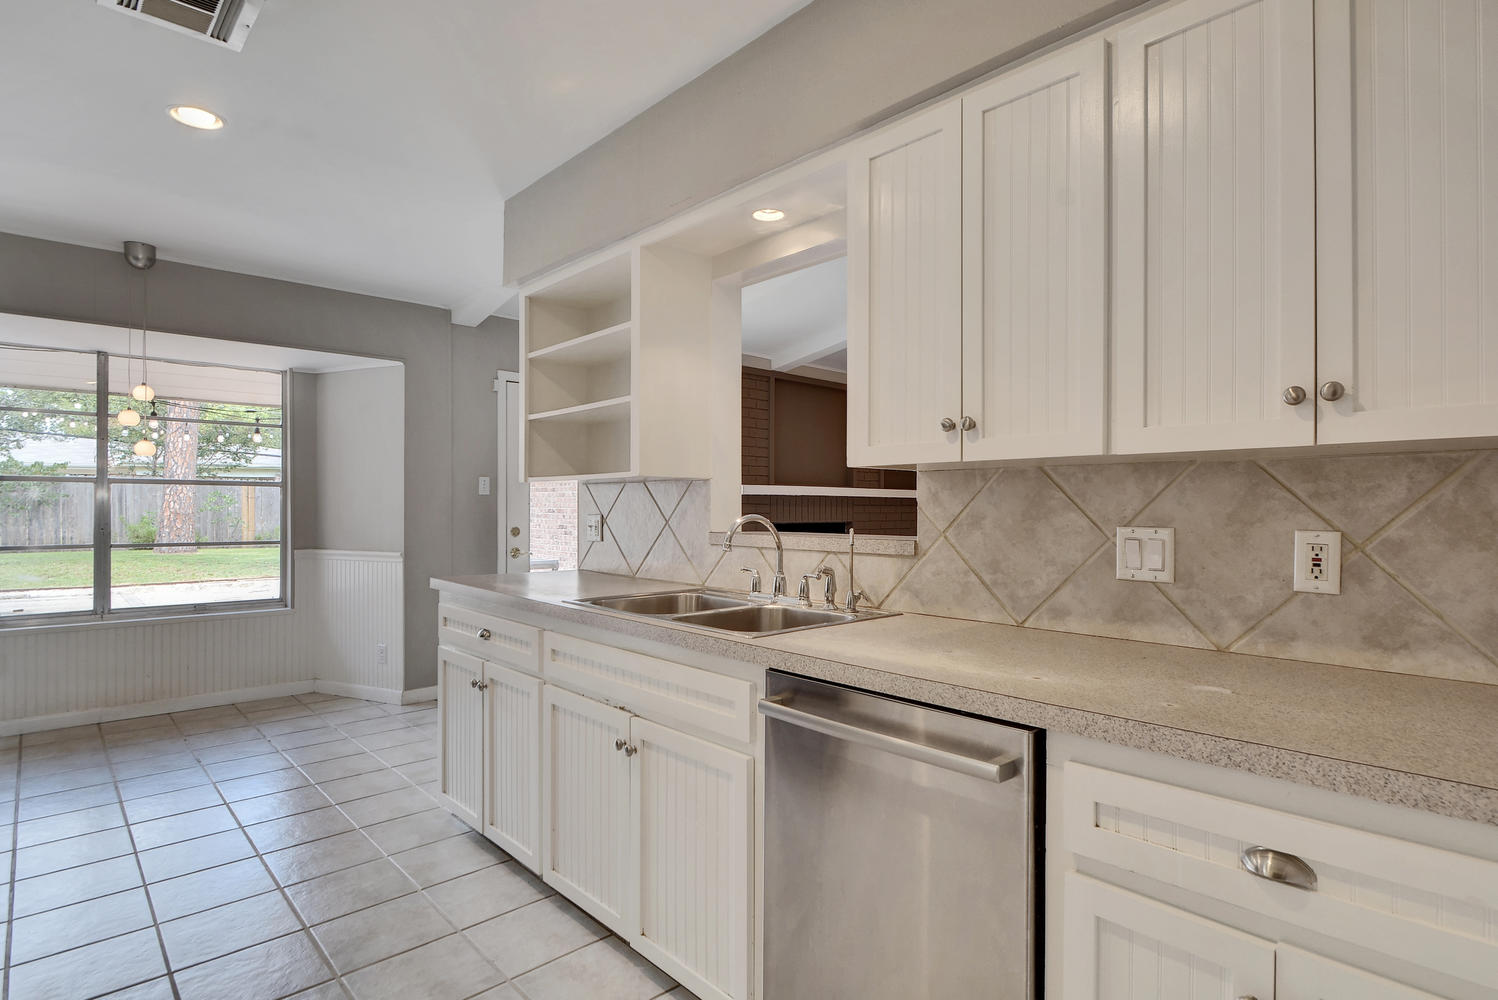 1802 Westmoor Dr-large-009-12-Kitchen and Breakfast 002-1499x1000-72dpi.jpg